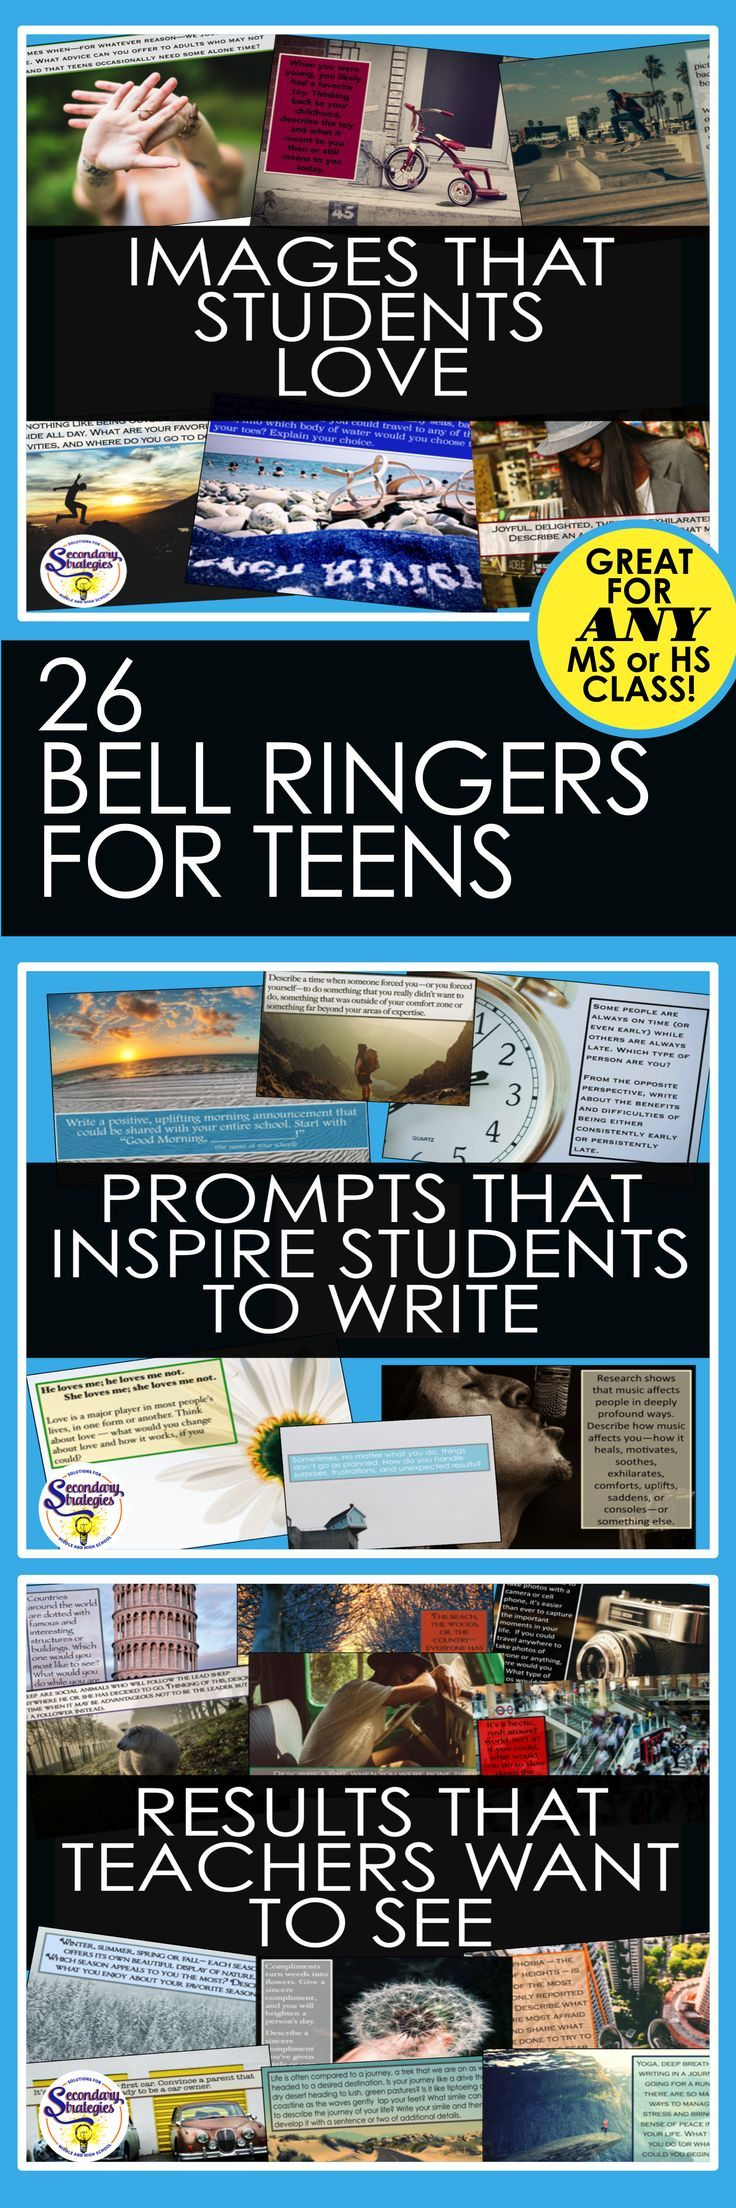 Bell Ringers with vivid photos and interesting prompts that will capture teens' attention and encourage them to write! Use in any middle or high school classroom to build community among students and increase writing skills.